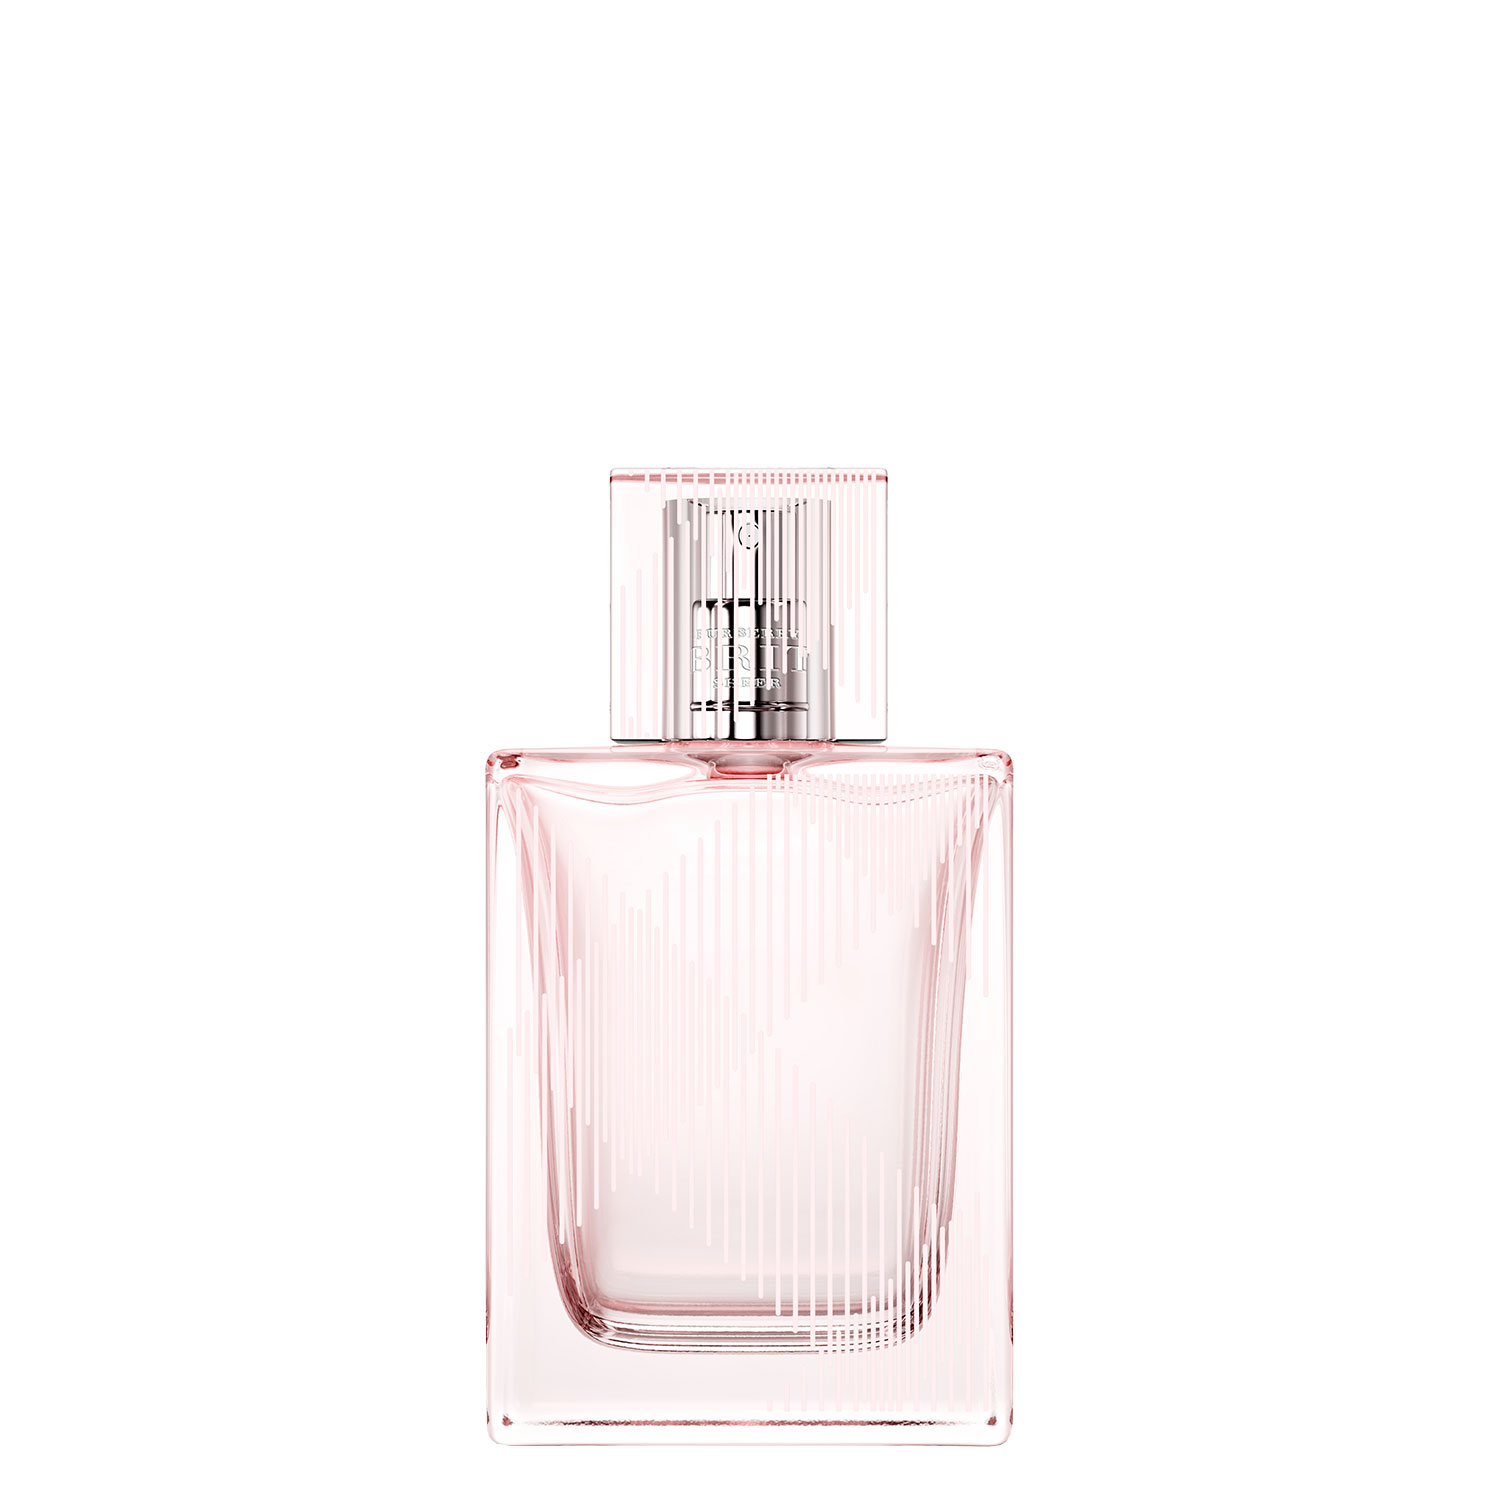 Burberry Brit - Sheer Eau de Toilette for Her